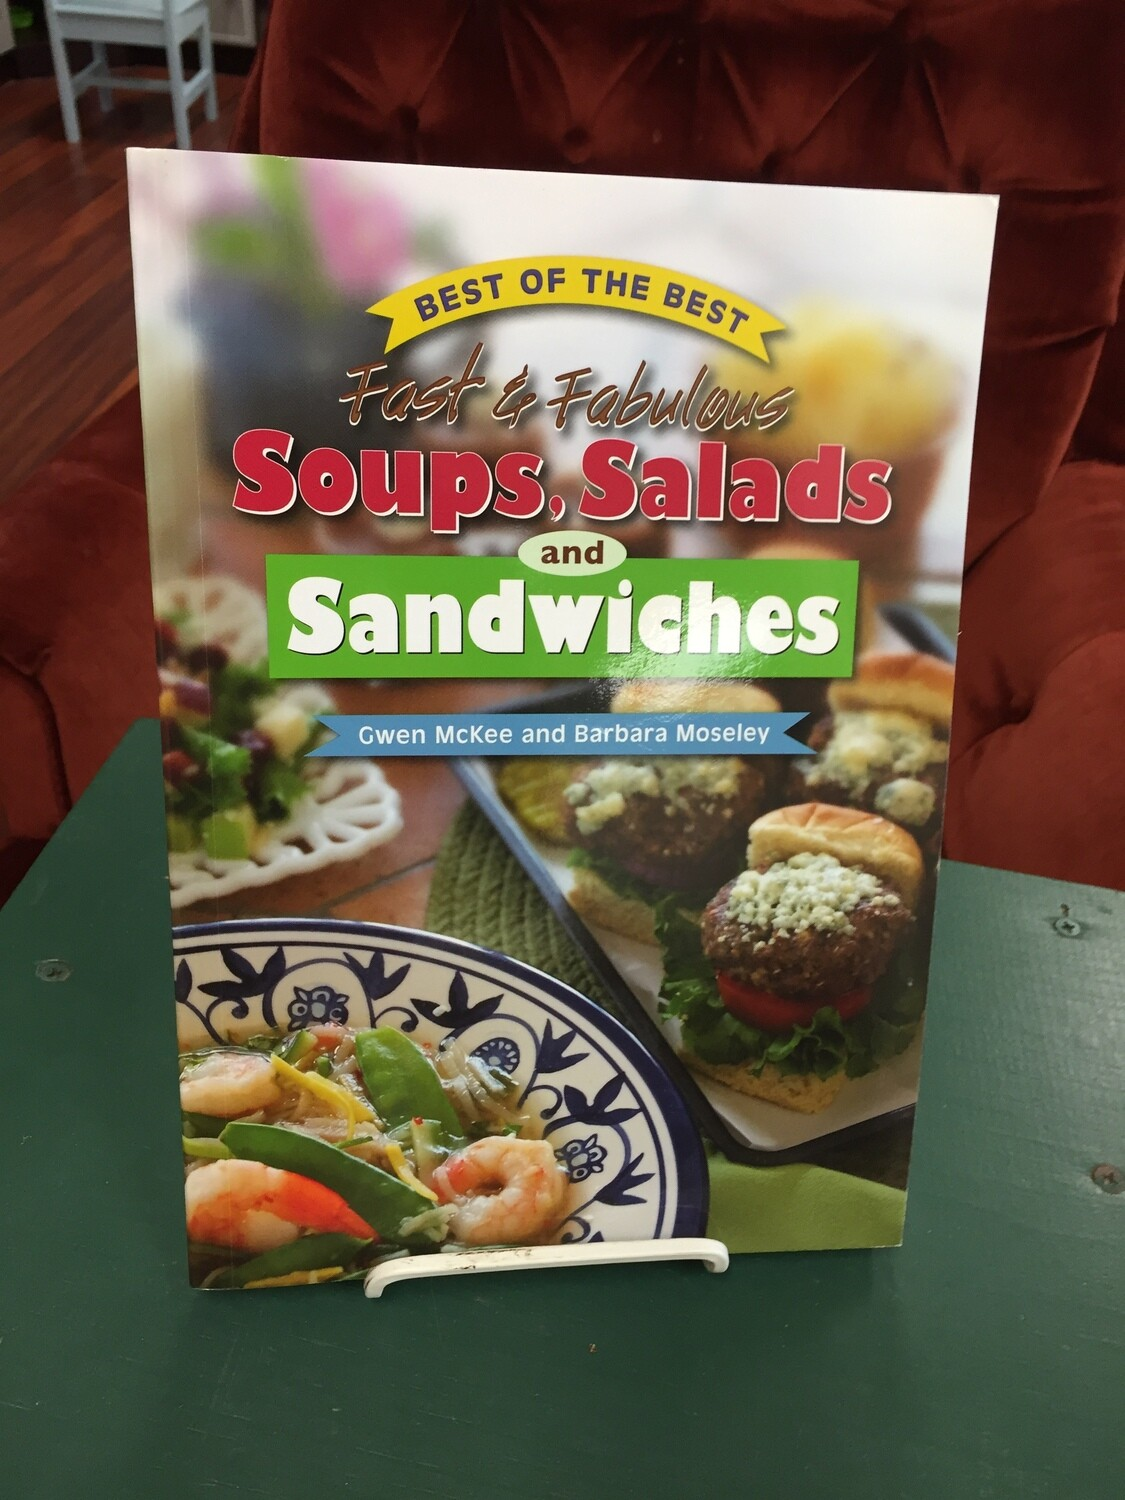 Soups, Salads, and Sandwiches